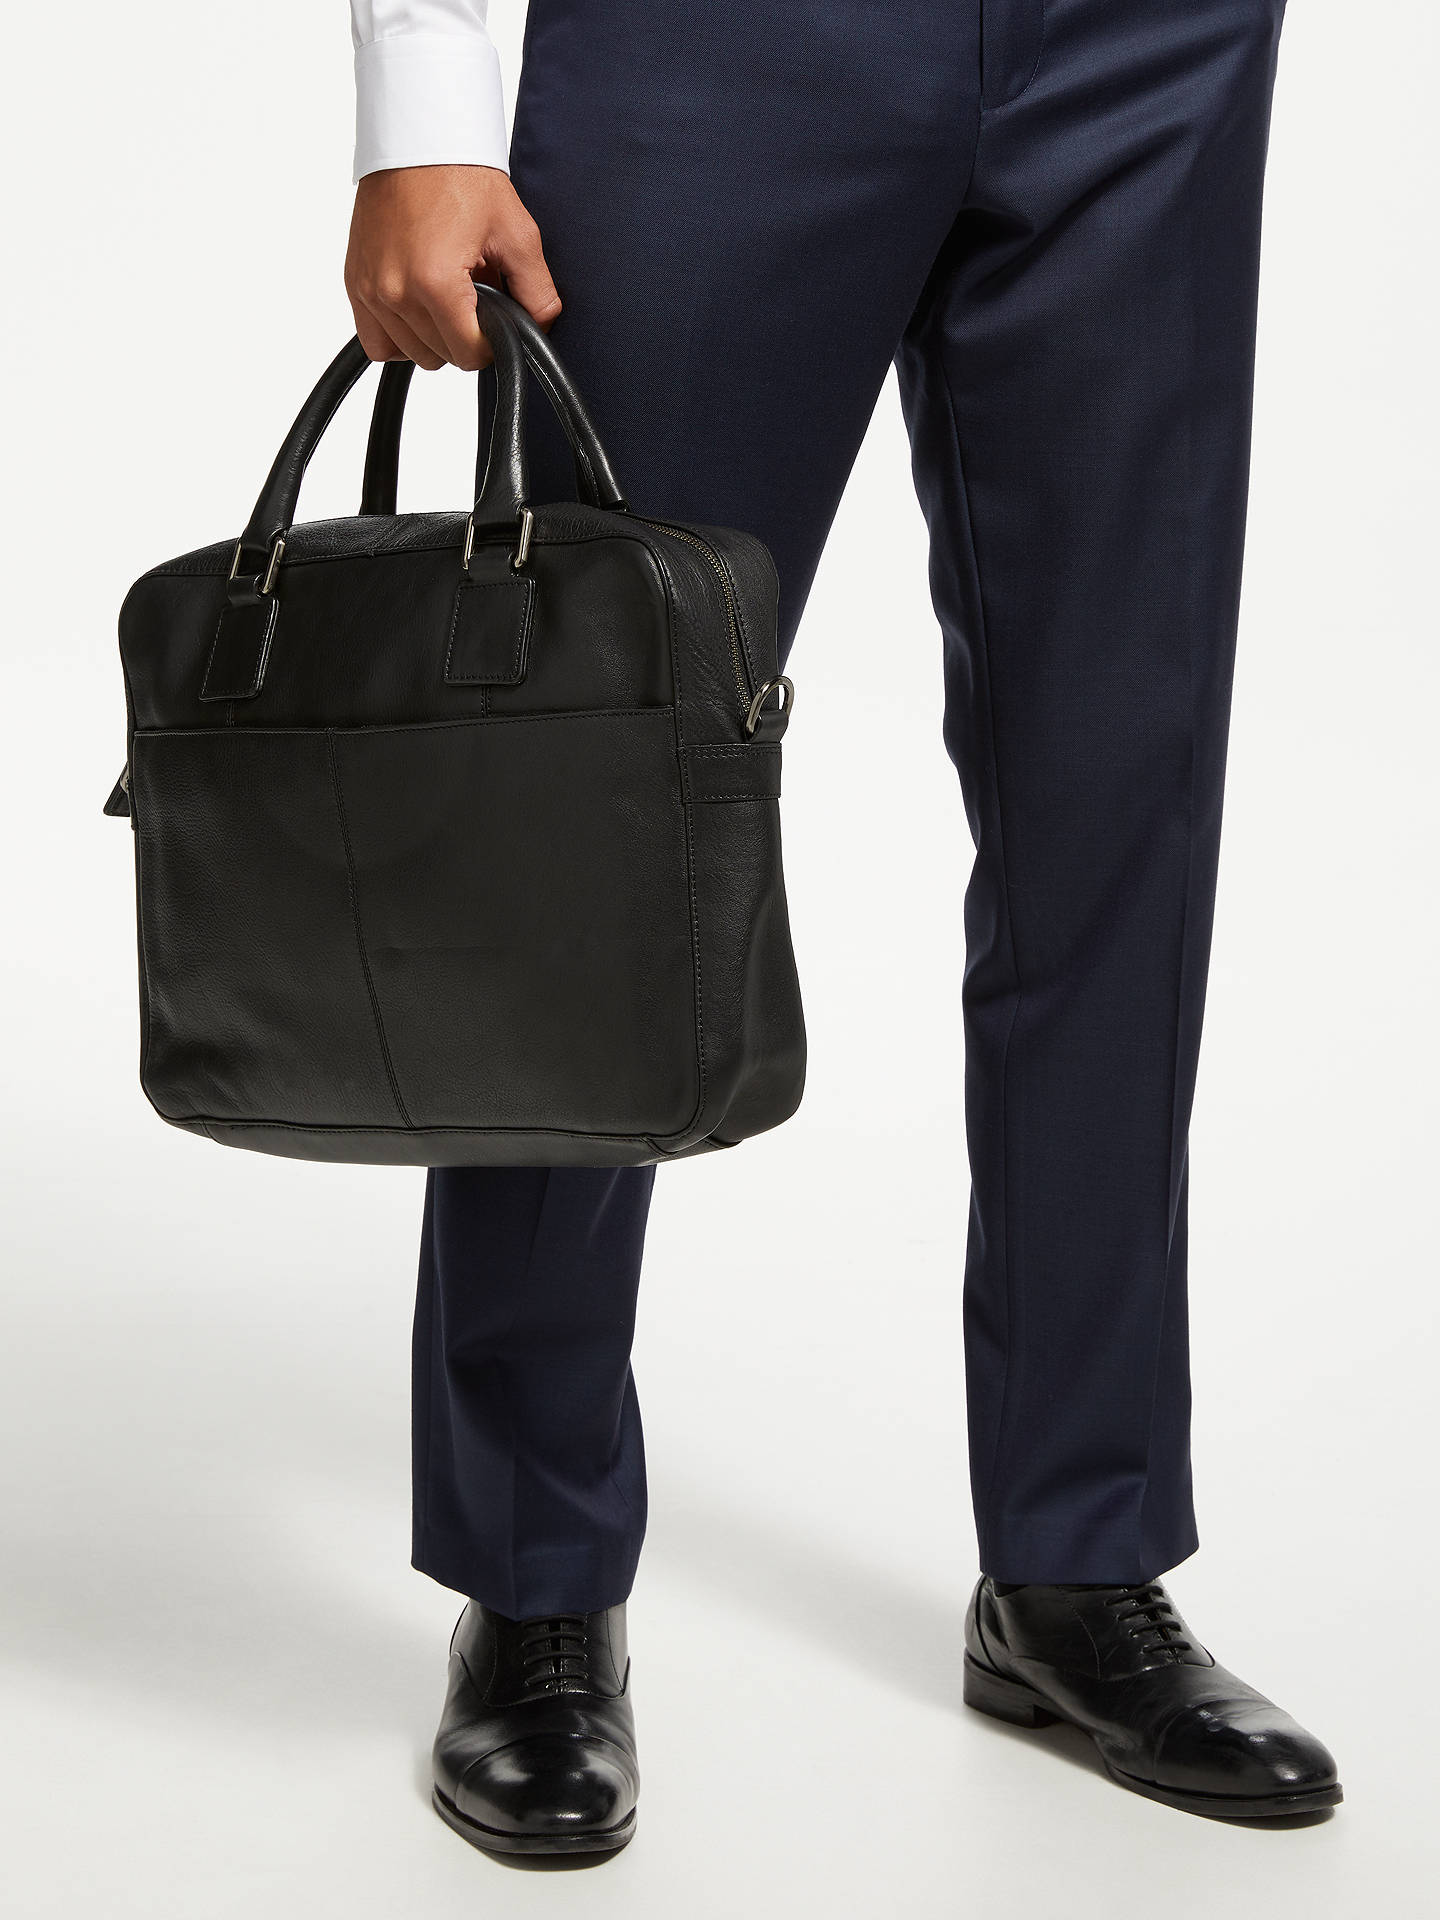 BuyJohn Lewis & Partners Gladstone 2.0 Laptop Leather Briefcase, Black Online at johnlewis.com